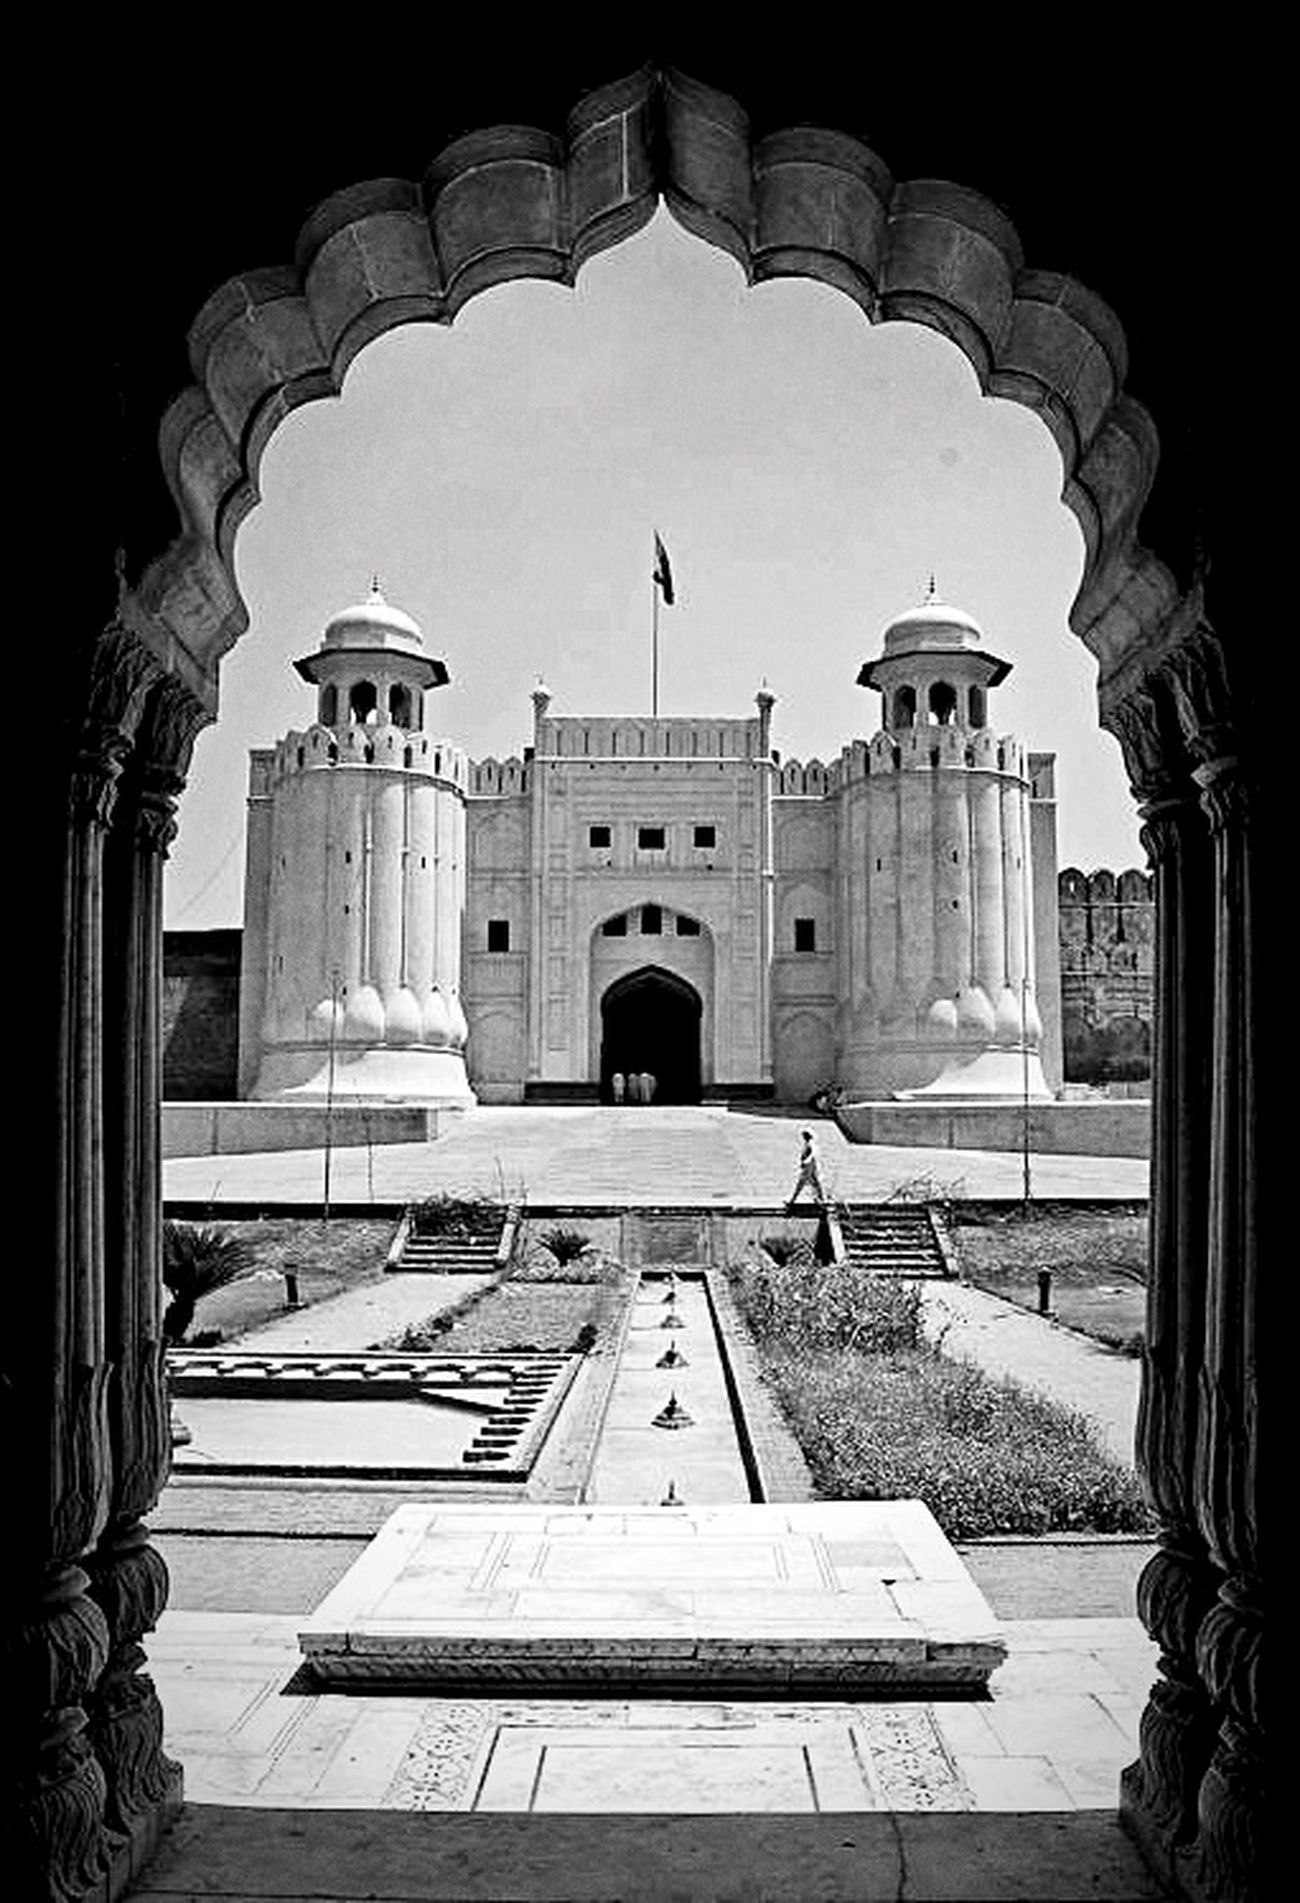 EyeEm Best Shots - Black + White Black And White Photography Black & White Monochrome Architecture_bw Travel Photography Lahore Fort in Pakistan